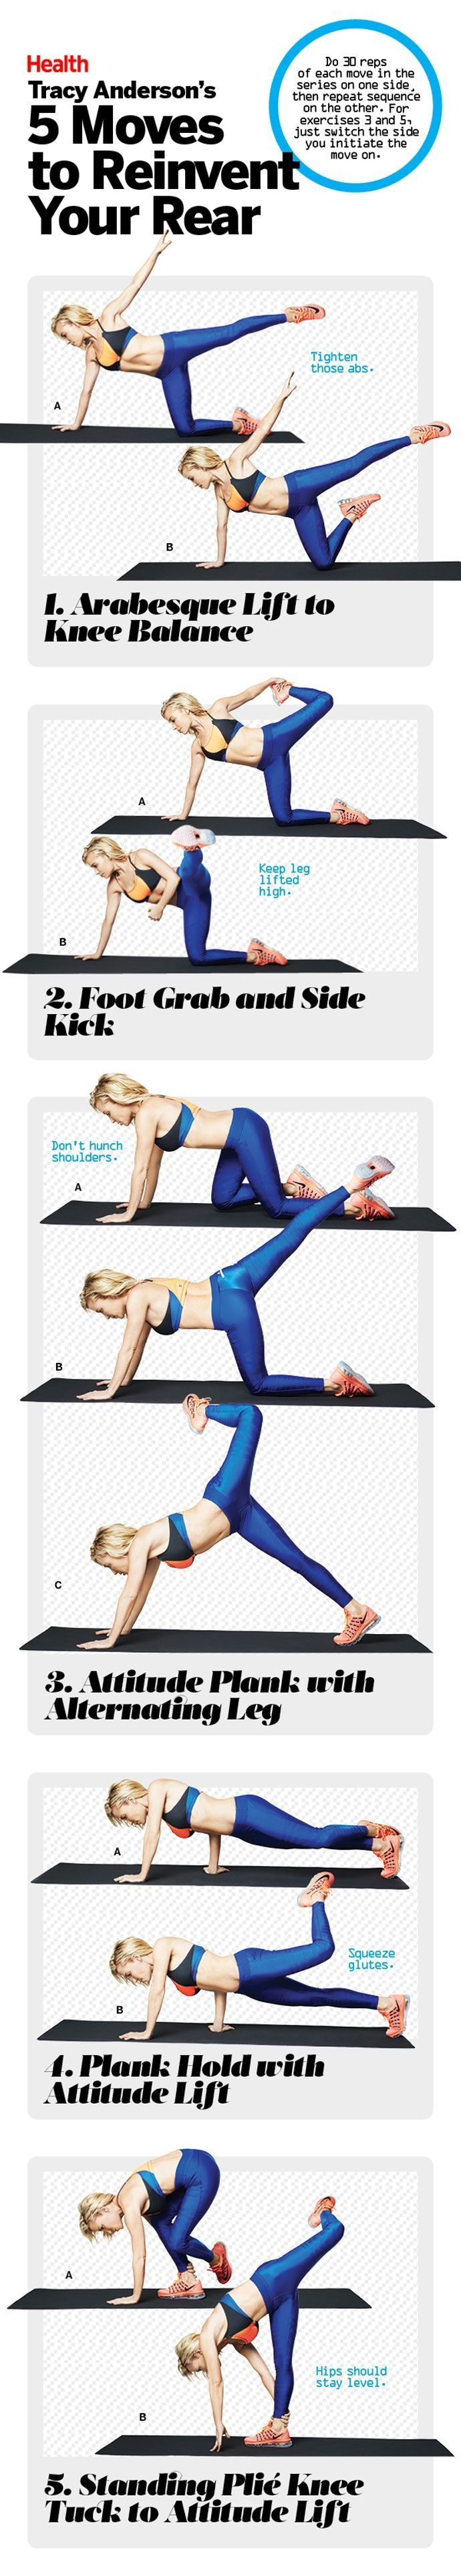 Craving a better butt? This home workout from Tracy Anderson includes five challenging glute exercises that will lift and tighten your rear. | Health.com